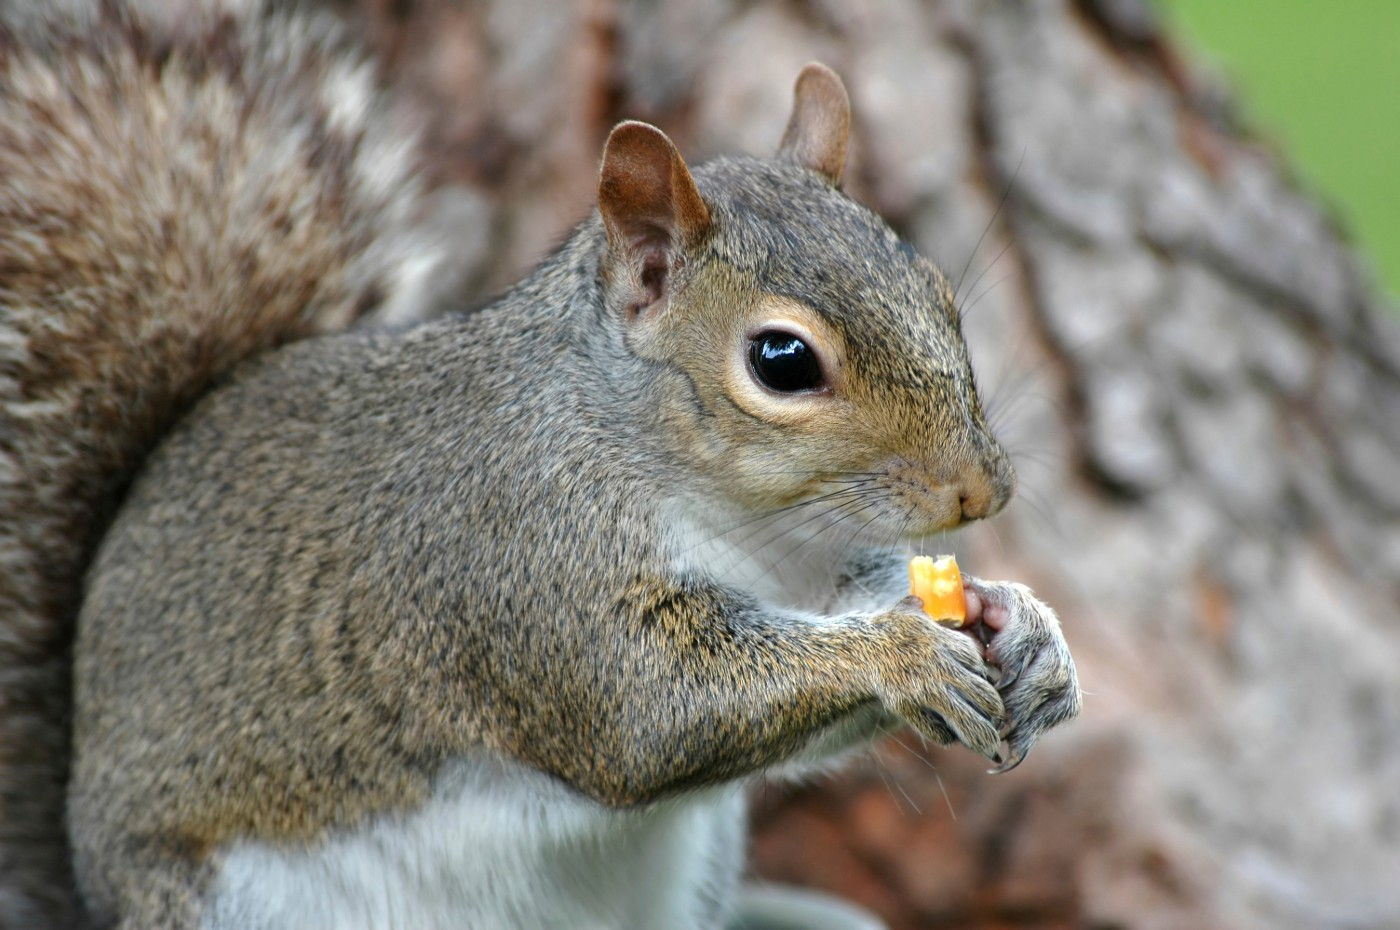 https://tickertapecdn.tdameritrade.com/assets/images/pages/md/Squirrel: How 401(k) fees can affect retirement savings